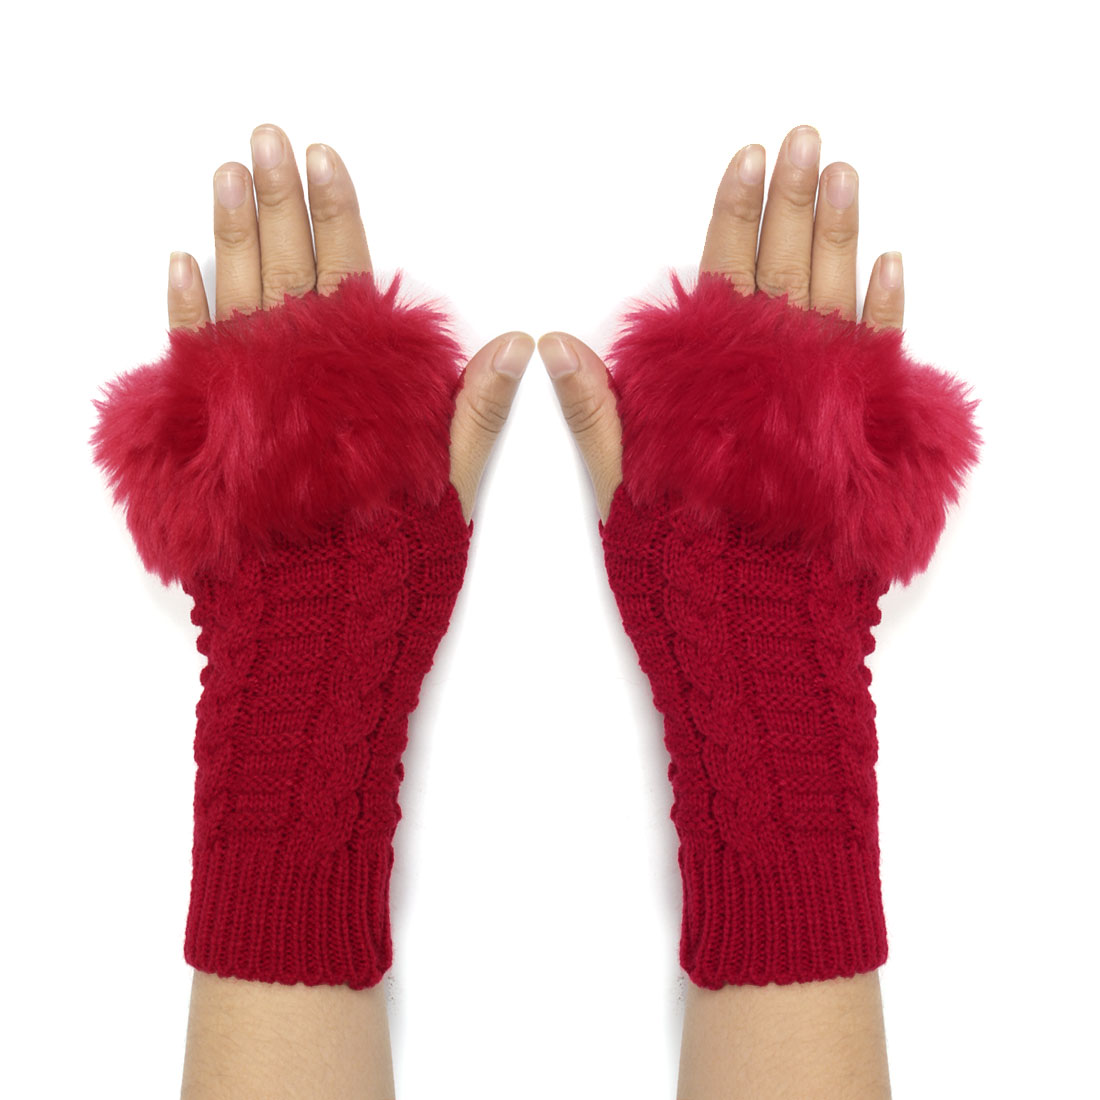 Woman Faux Fur Elastic Braided Pattern Knitted Fingerless Gloves Red Pair